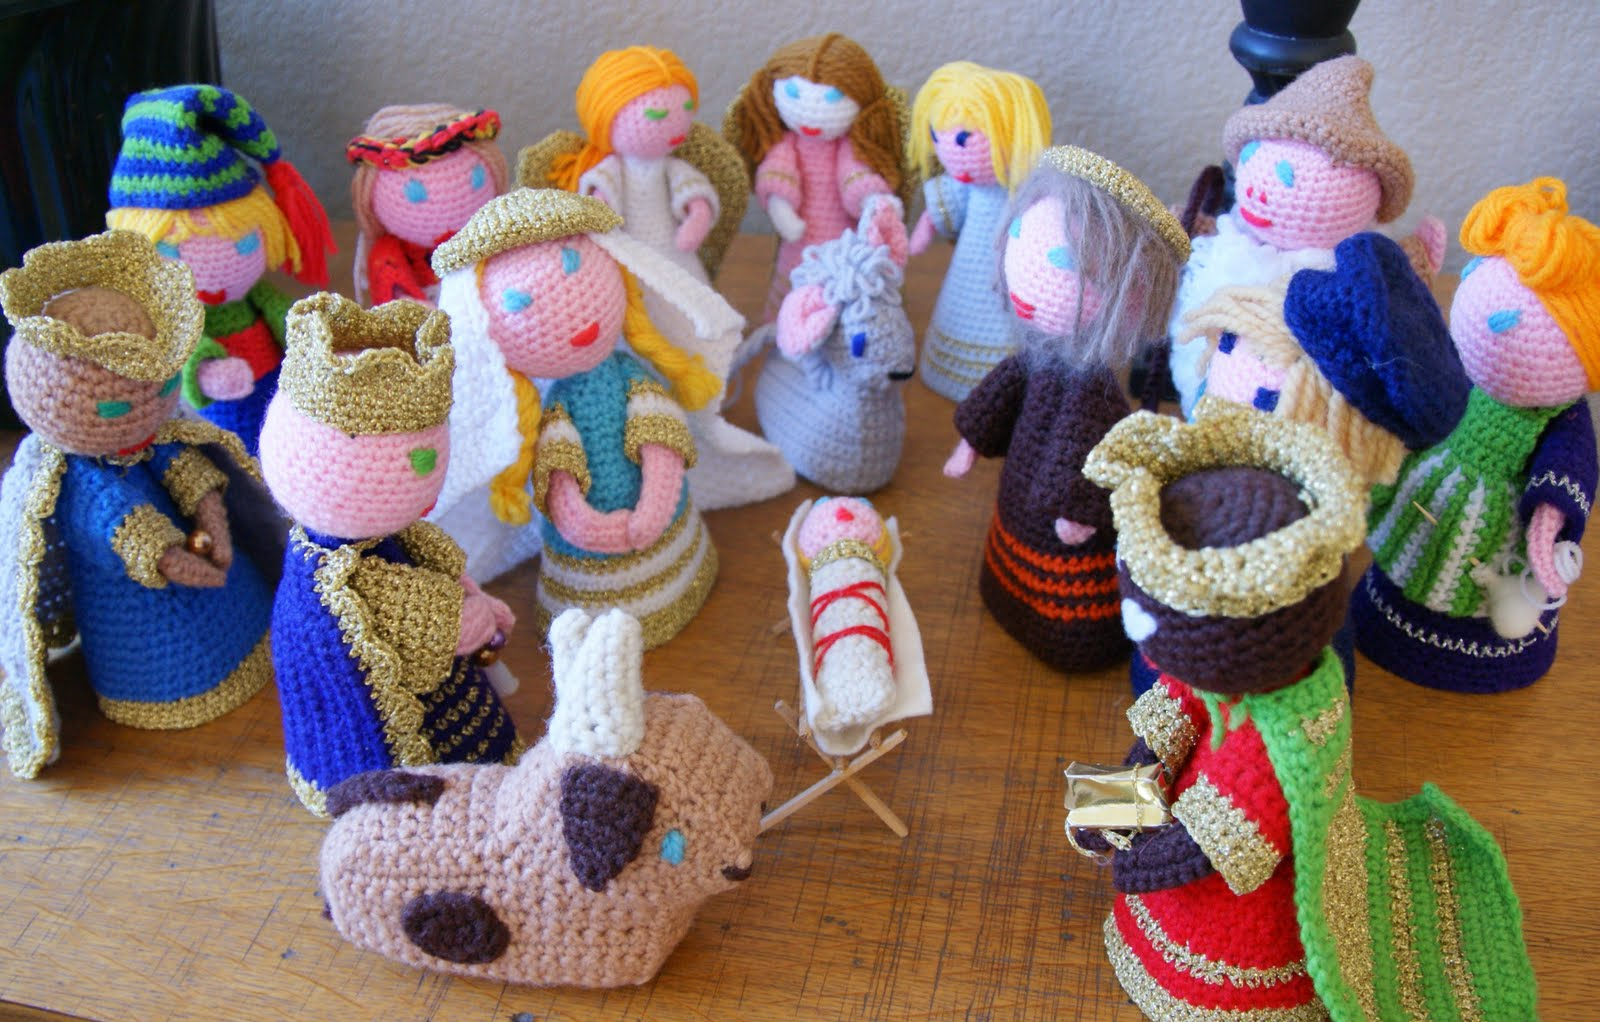 Crochet Patterns Nativity Scene : Crochet Nativity Search Results Calendar 2015